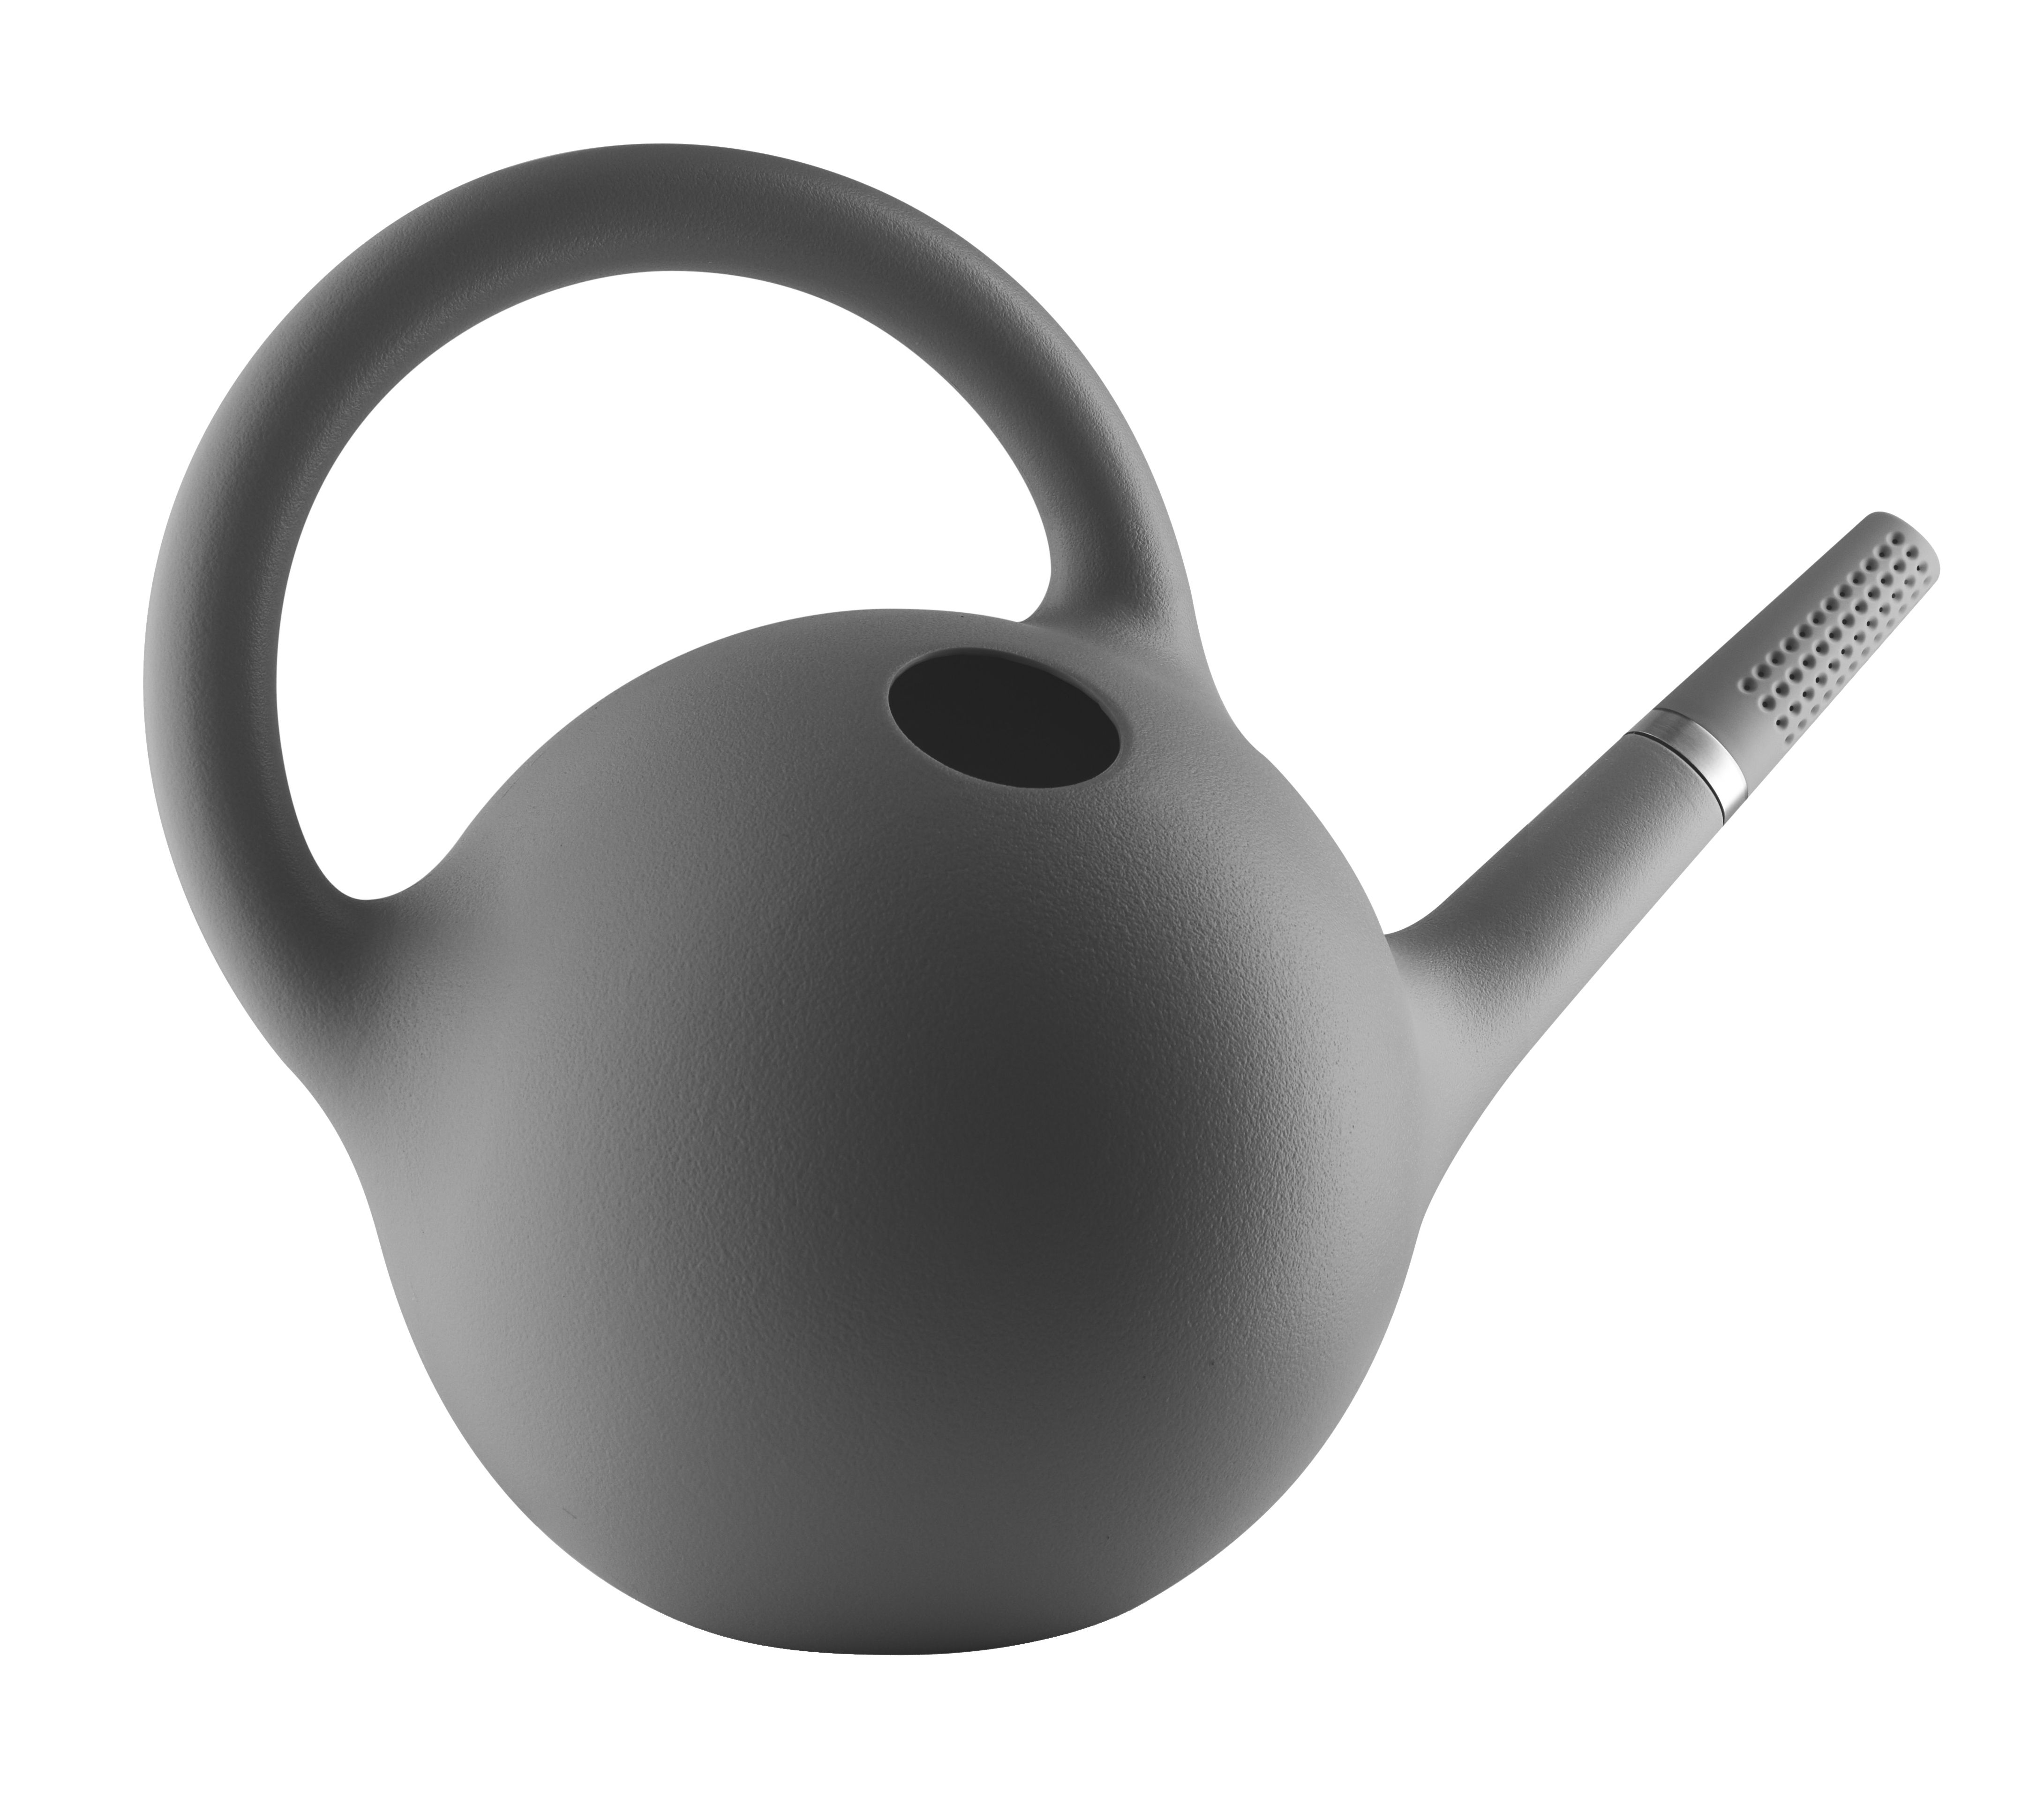 Outdoor - Pots & Plants - Globe Watering can - / 9 L by Eva Solo - Grey - Plastic, Stainless steel